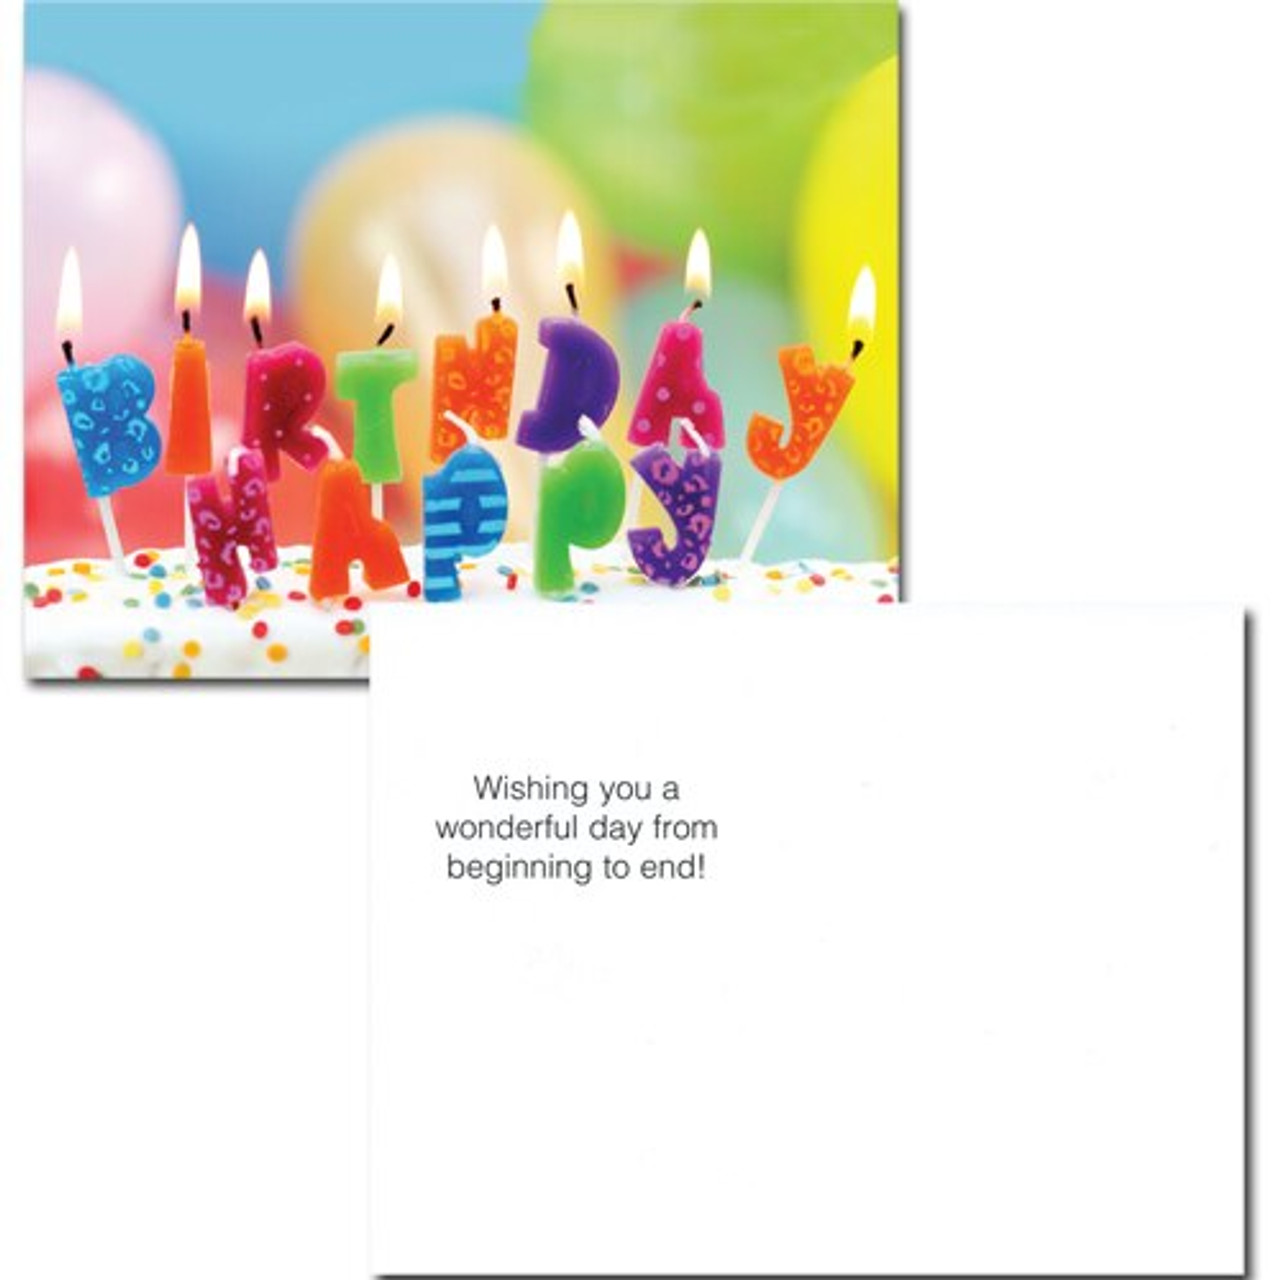 Lighted Letters Birthday Postcard. Greeting reads: Wishing you a wonderful day from beginning to end!